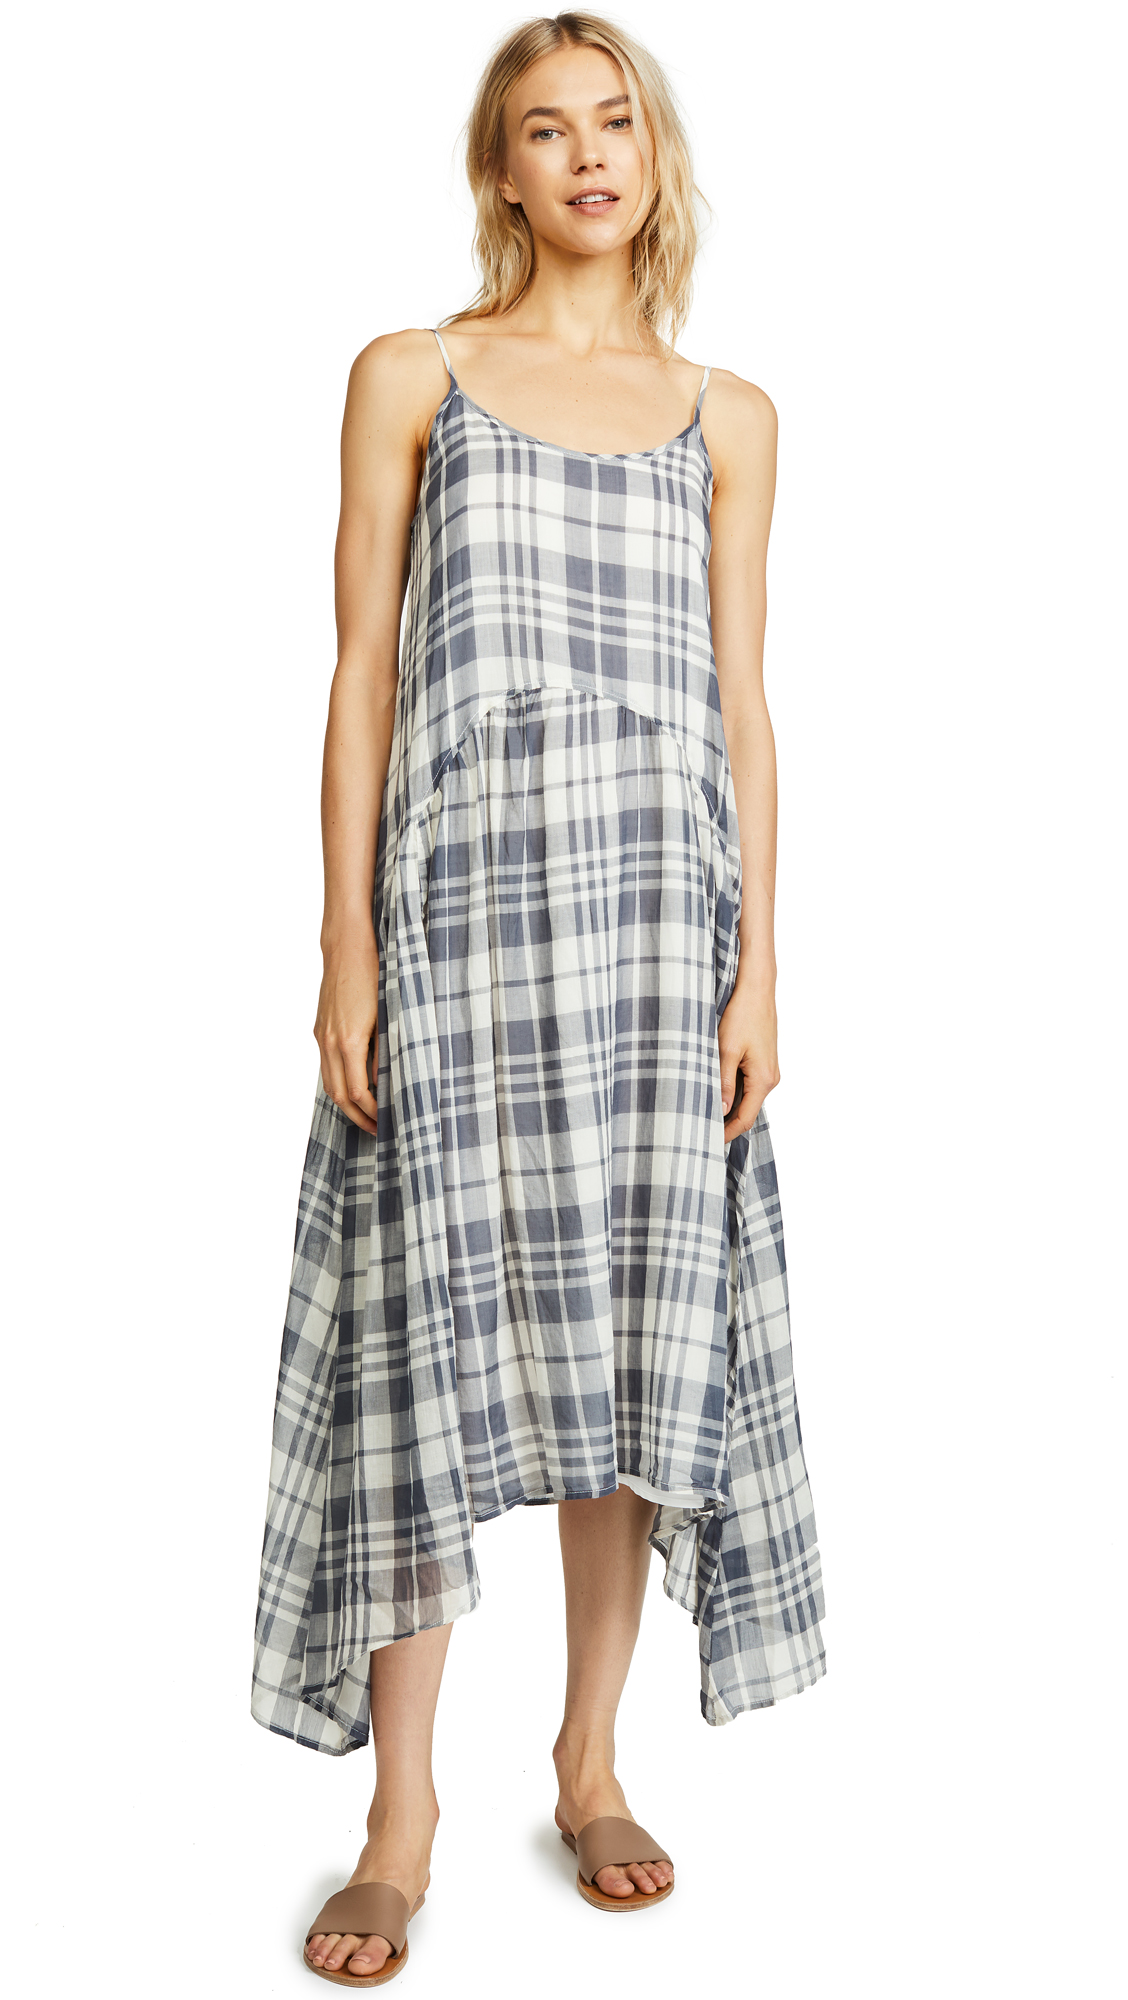 Nightingale Dress in Slate Plaid